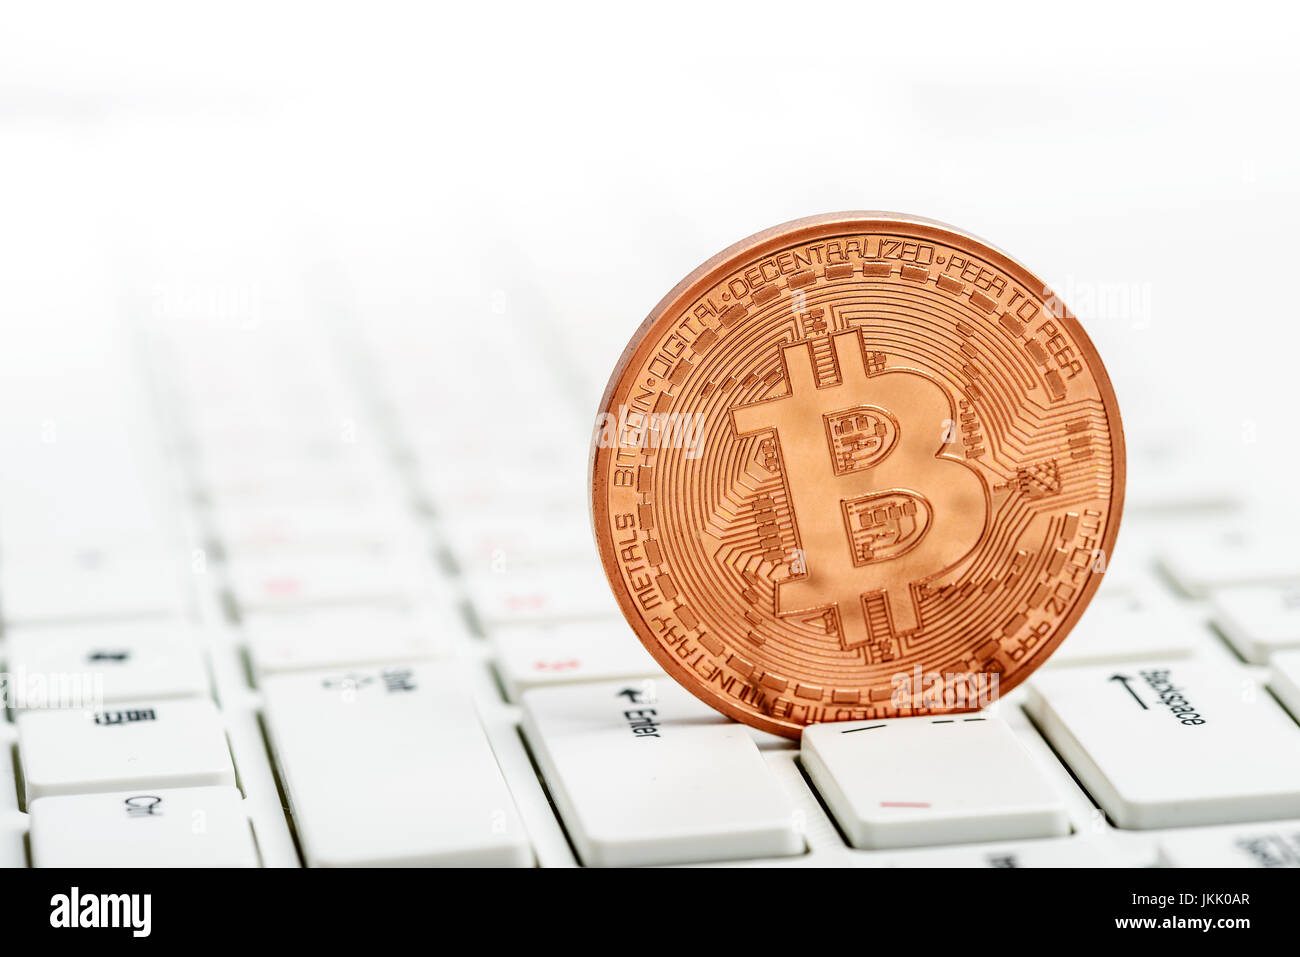 Bitcoin coin on white keyboard and money - Stock Image